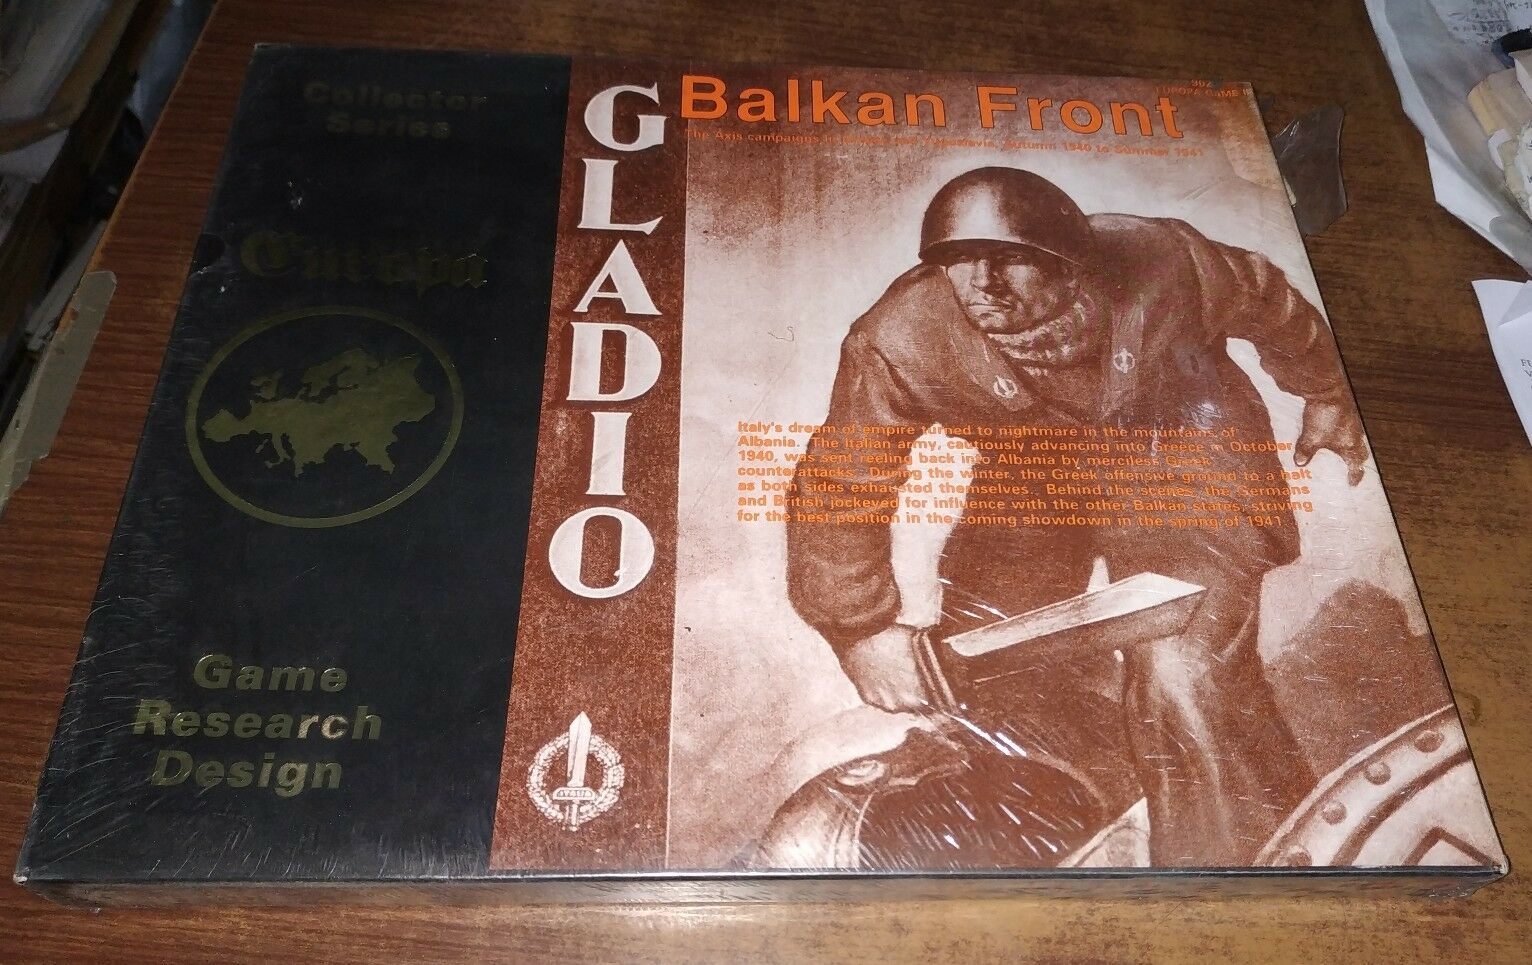 Balkan Front Gladio 902 Europa Game III Collector Series Game Research Design